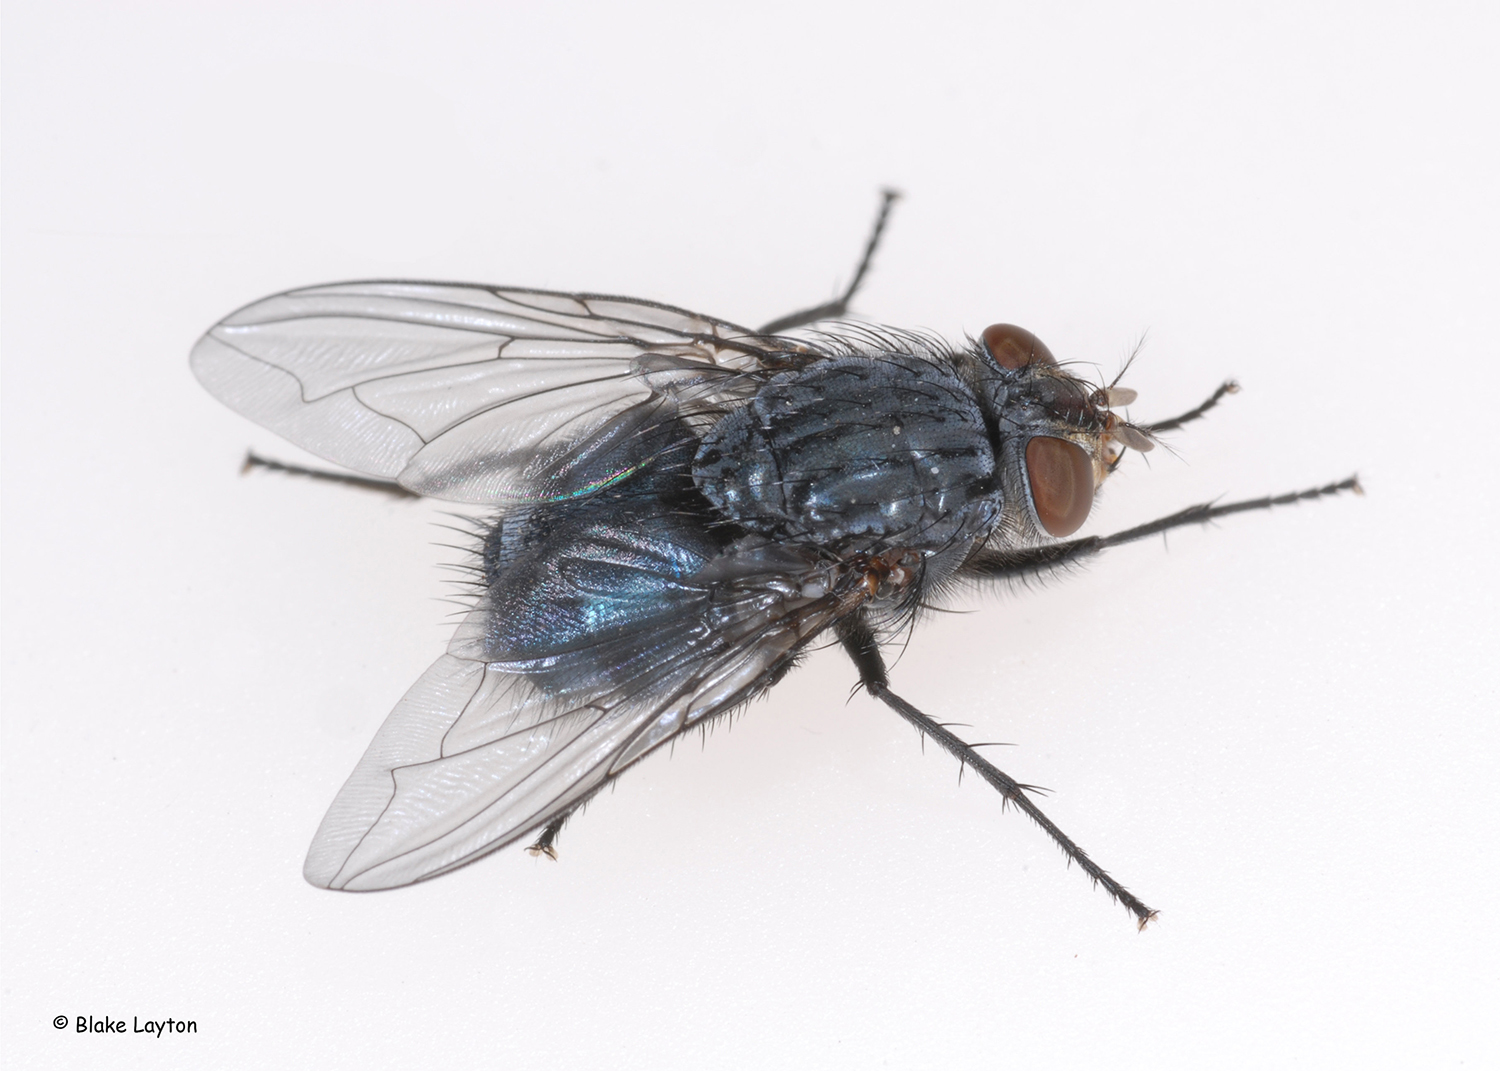 A fly with a shimmery blue color.